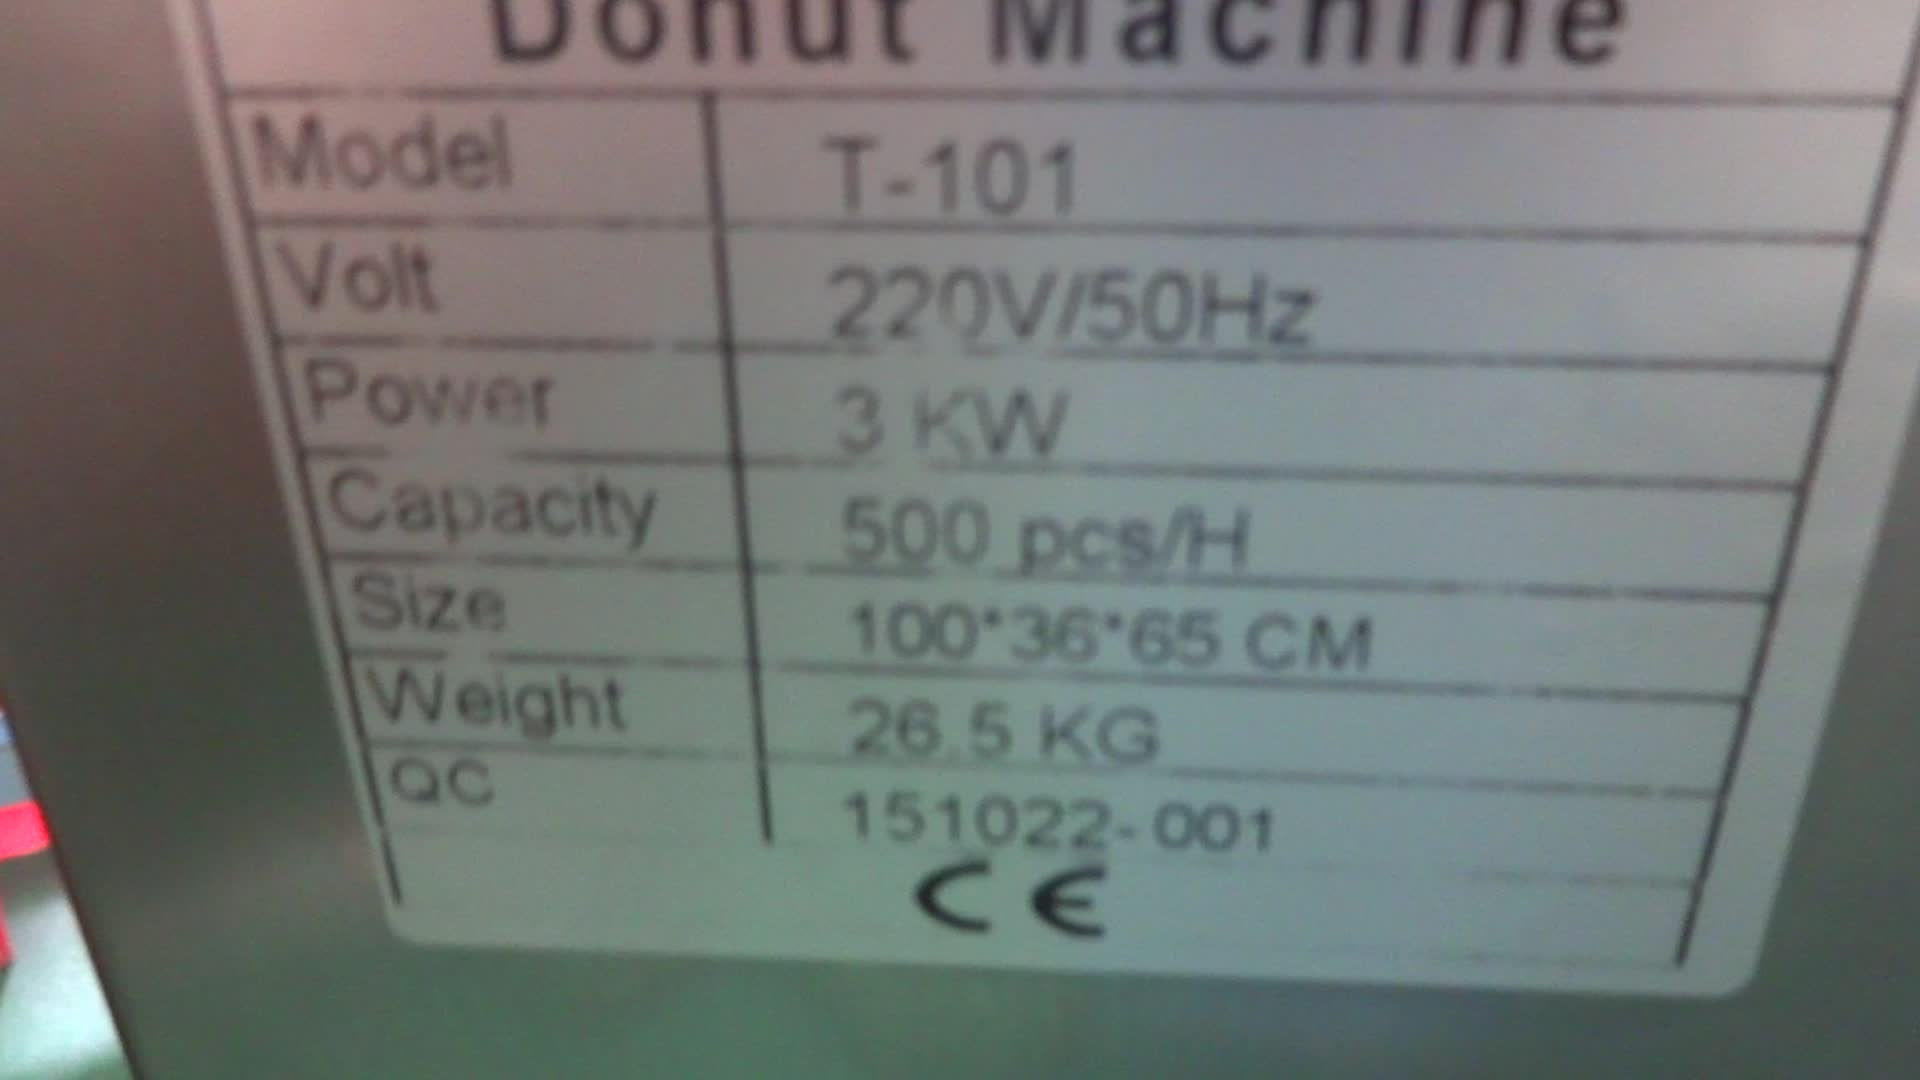 Electric Mini Donut Machine T-101 Automatic For Sale Good  Price